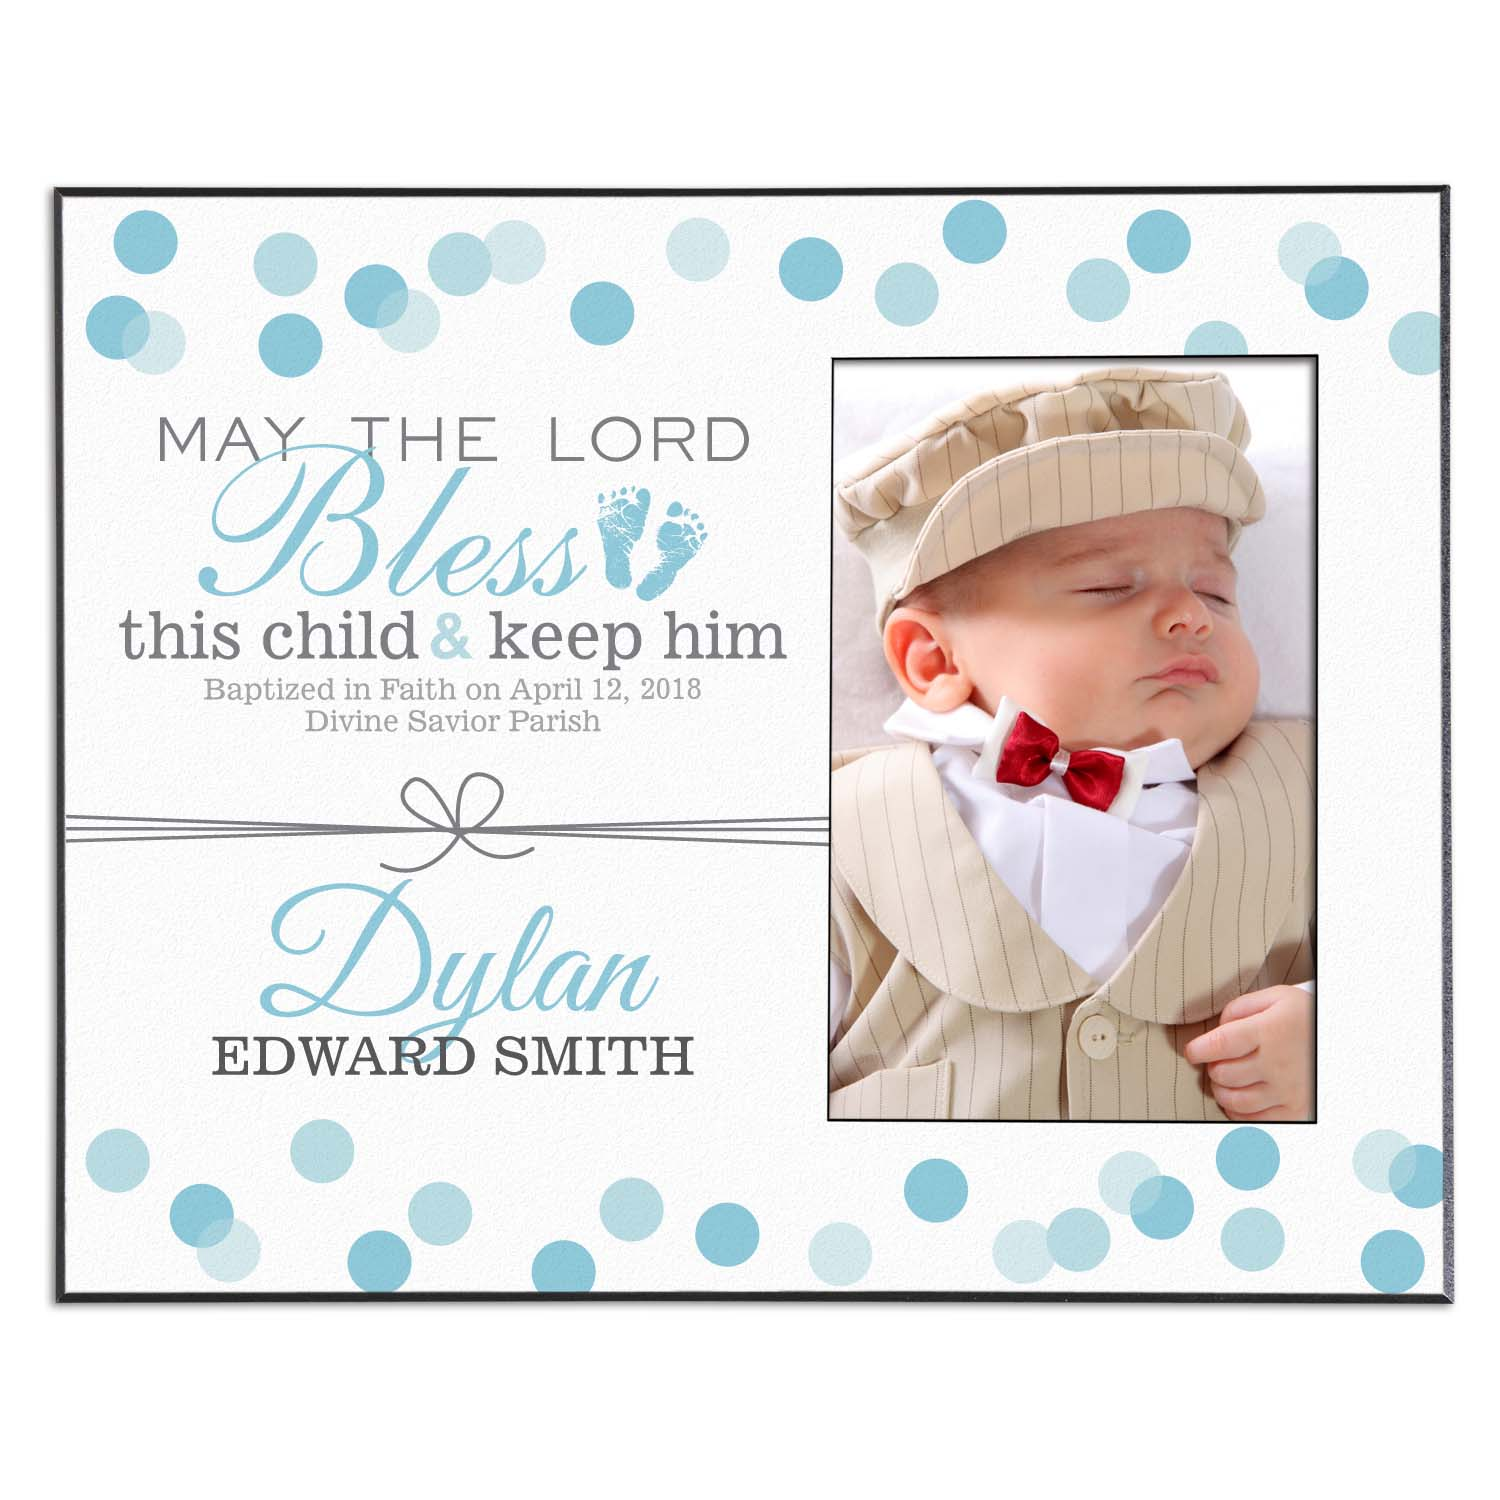 Personalized Baptismal Prayer Keepsake Frame, Available in Blue or Pink